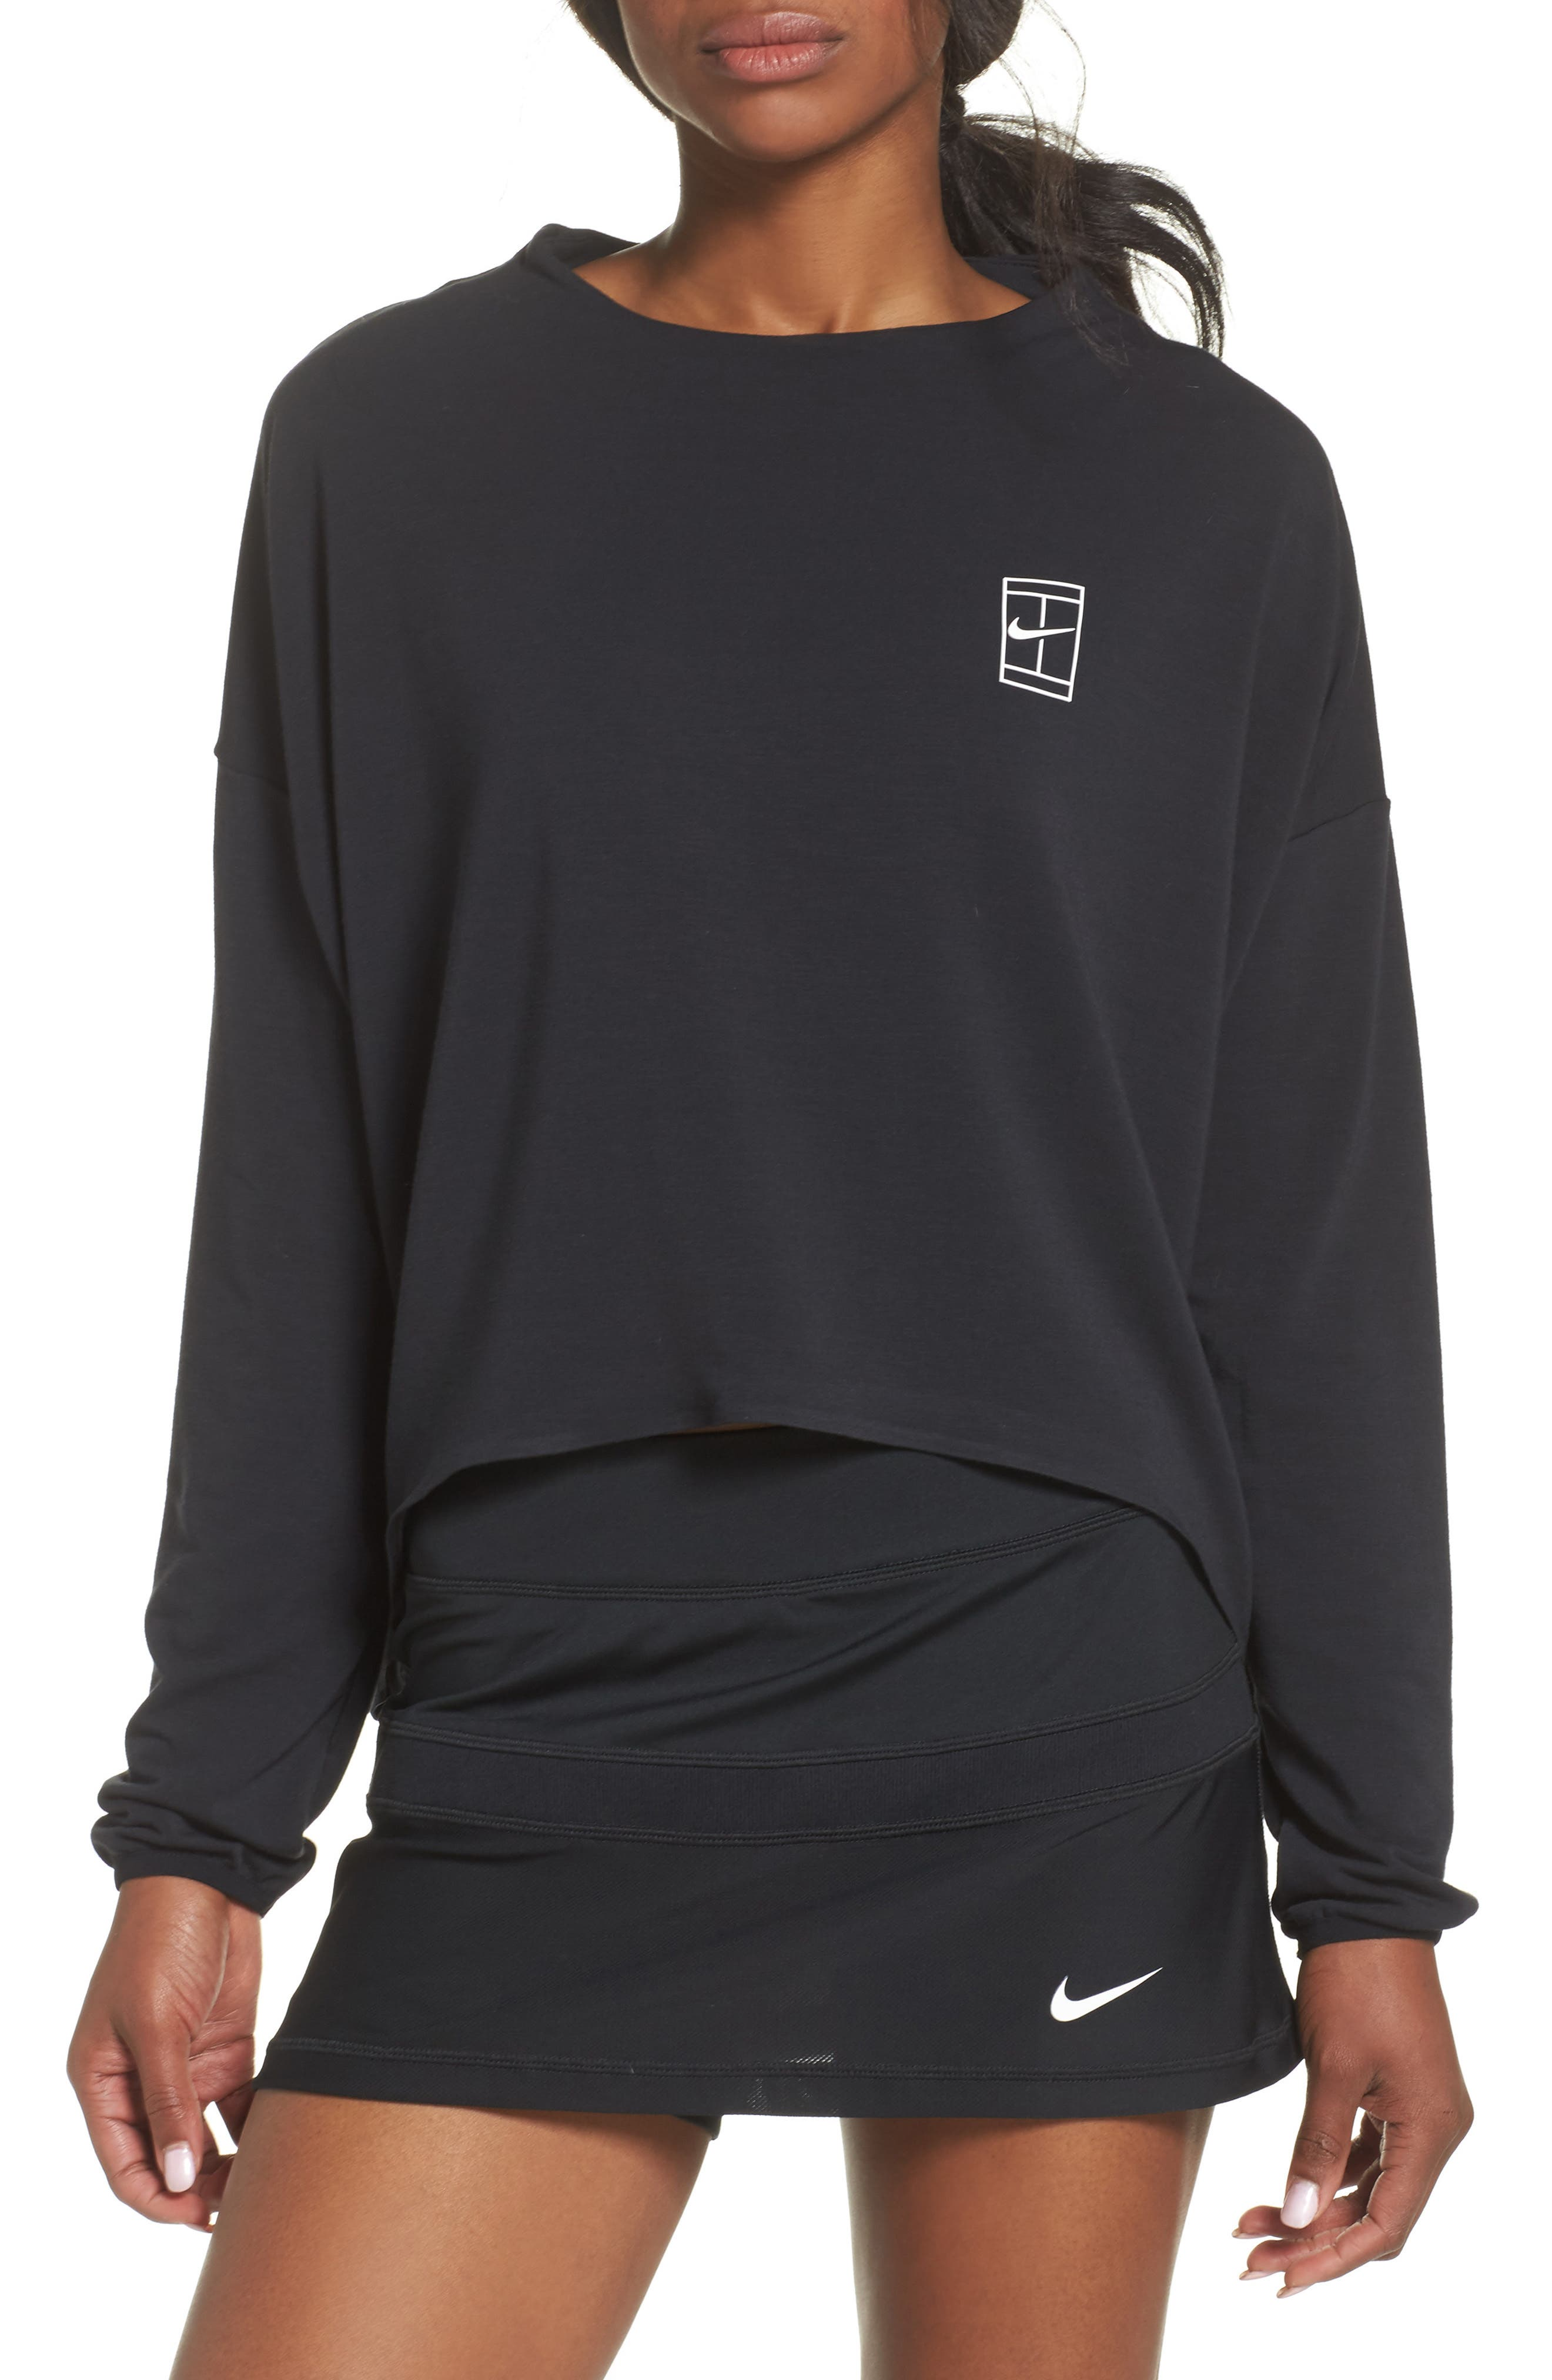 Nike Court Dri-FIT Long Sleeve Tennis Top